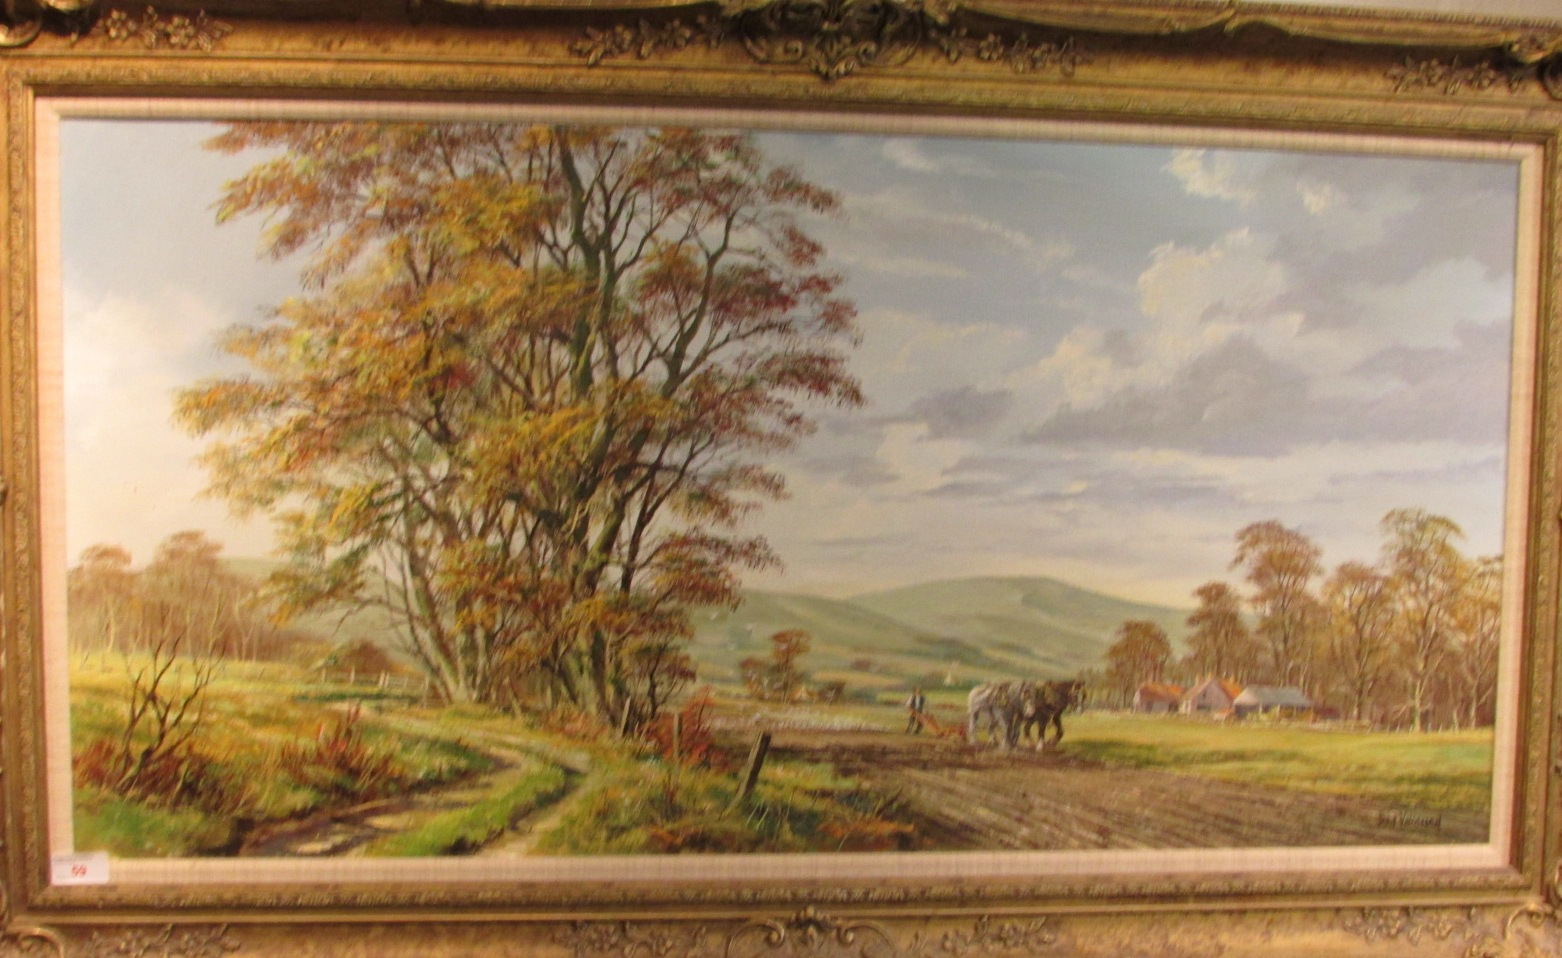 Lot 59 - 'Ploughing in Sussex', oil on canvas, signed Don Vaughan lower right, (49cm x 100cm) in a moulded